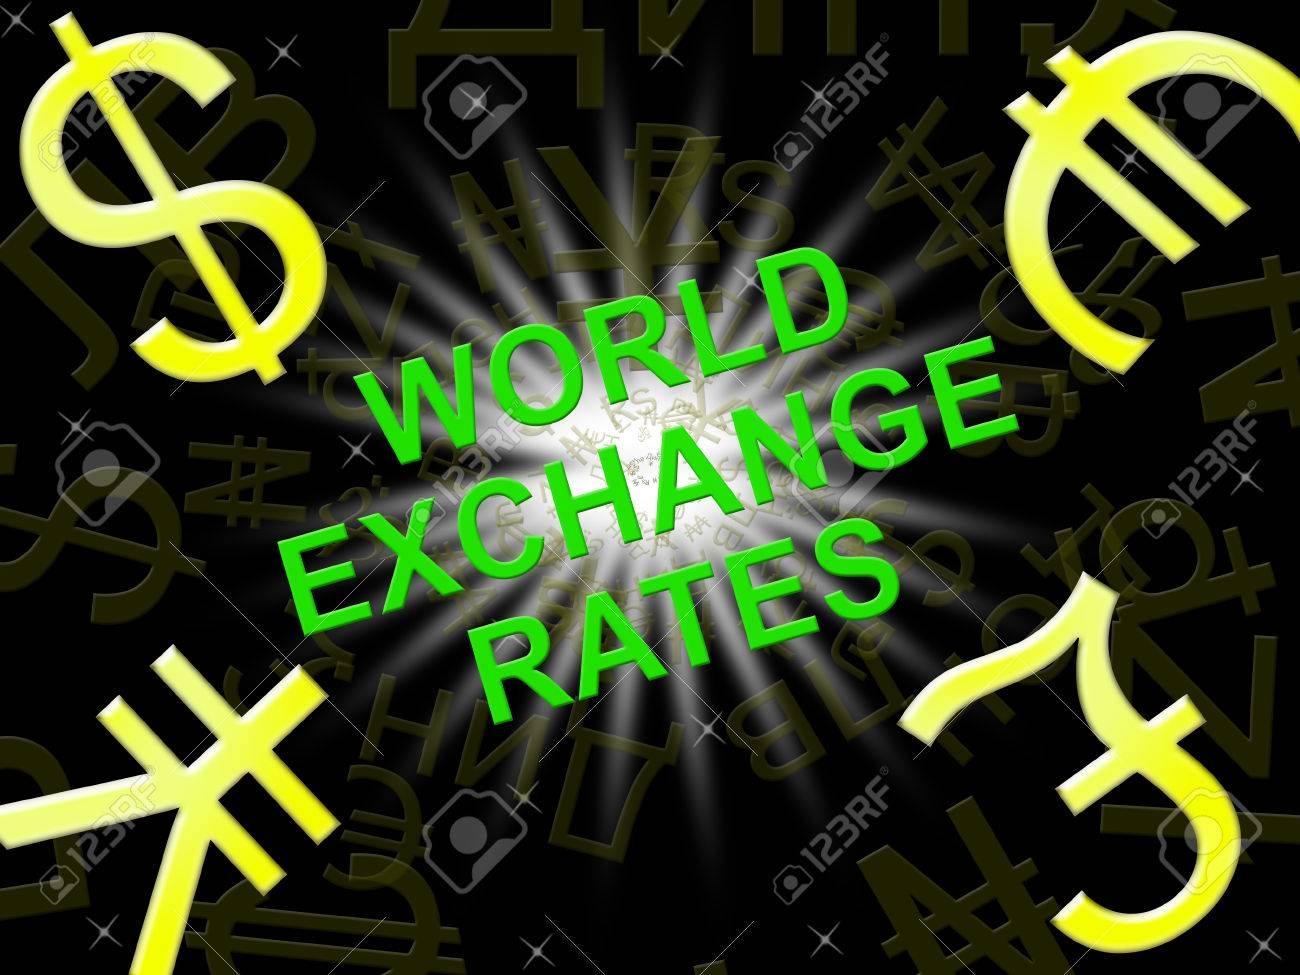 World exchange rates symbols indicating foreign exchange 3d world exchange rates symbols indicating foreign exchange 3d illustration stock illustration 79714107 biocorpaavc Images